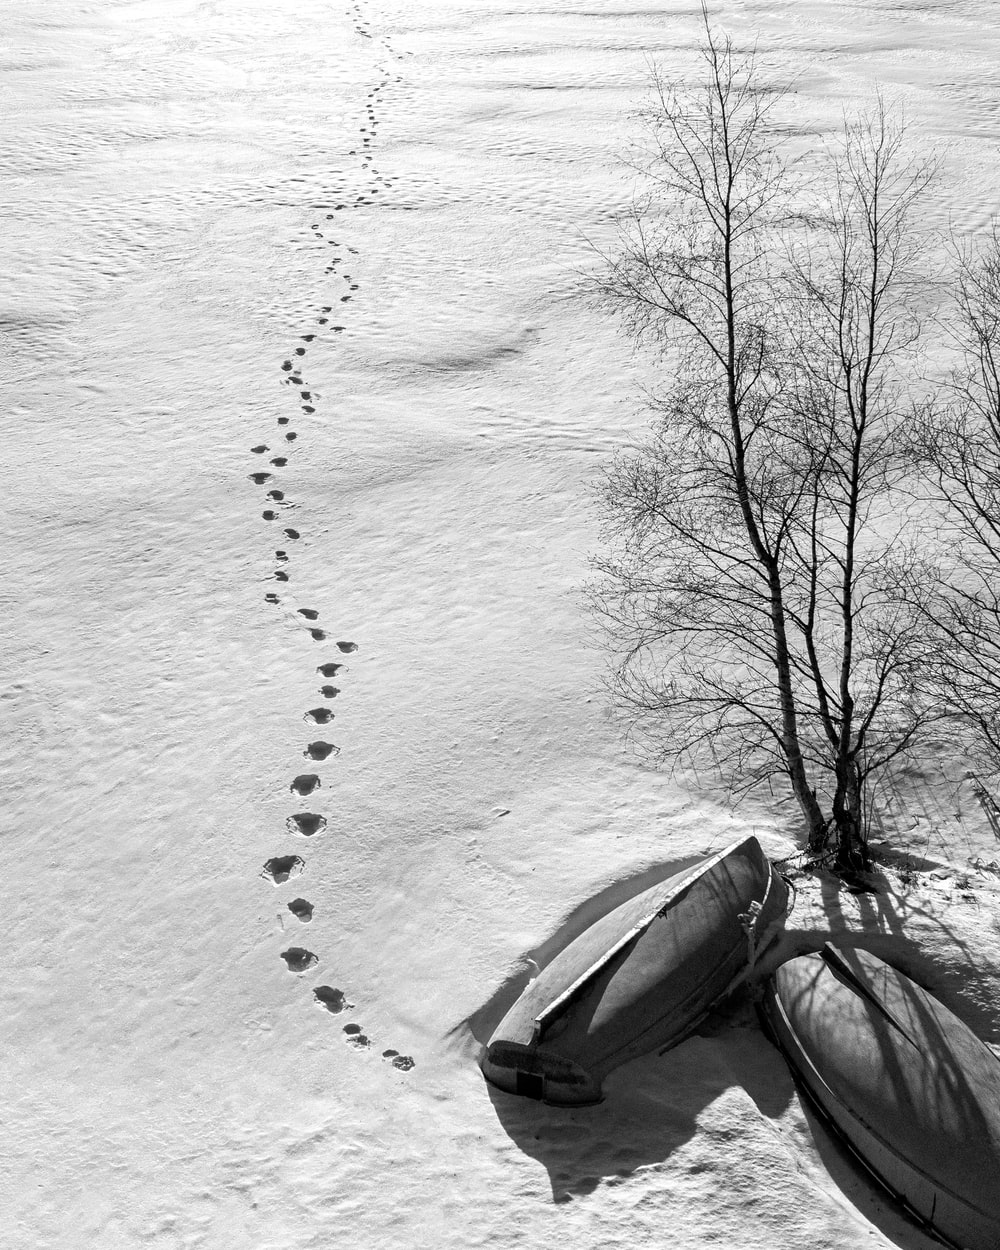 grayscale photo of car on snow covered ground